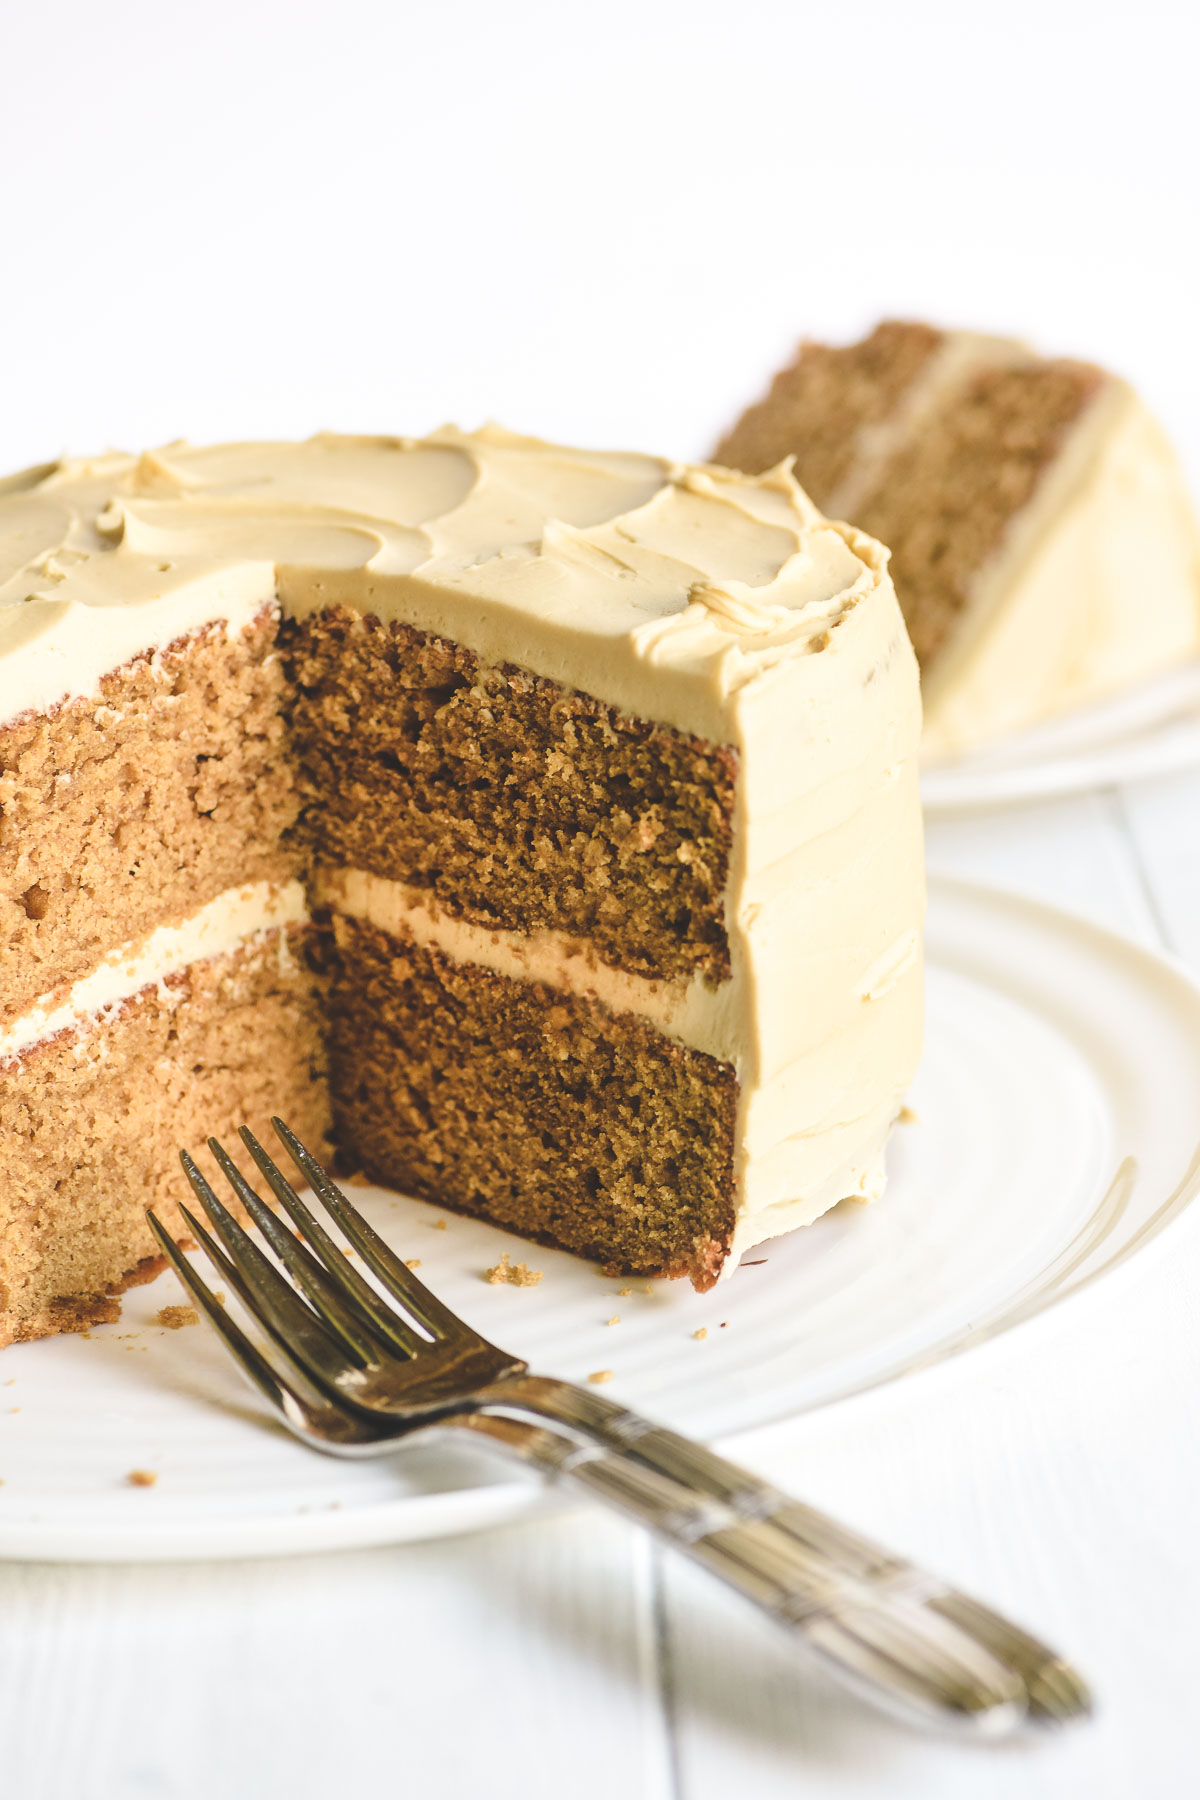 apple butter cake with brown sugar frosting, sliced open on a platter